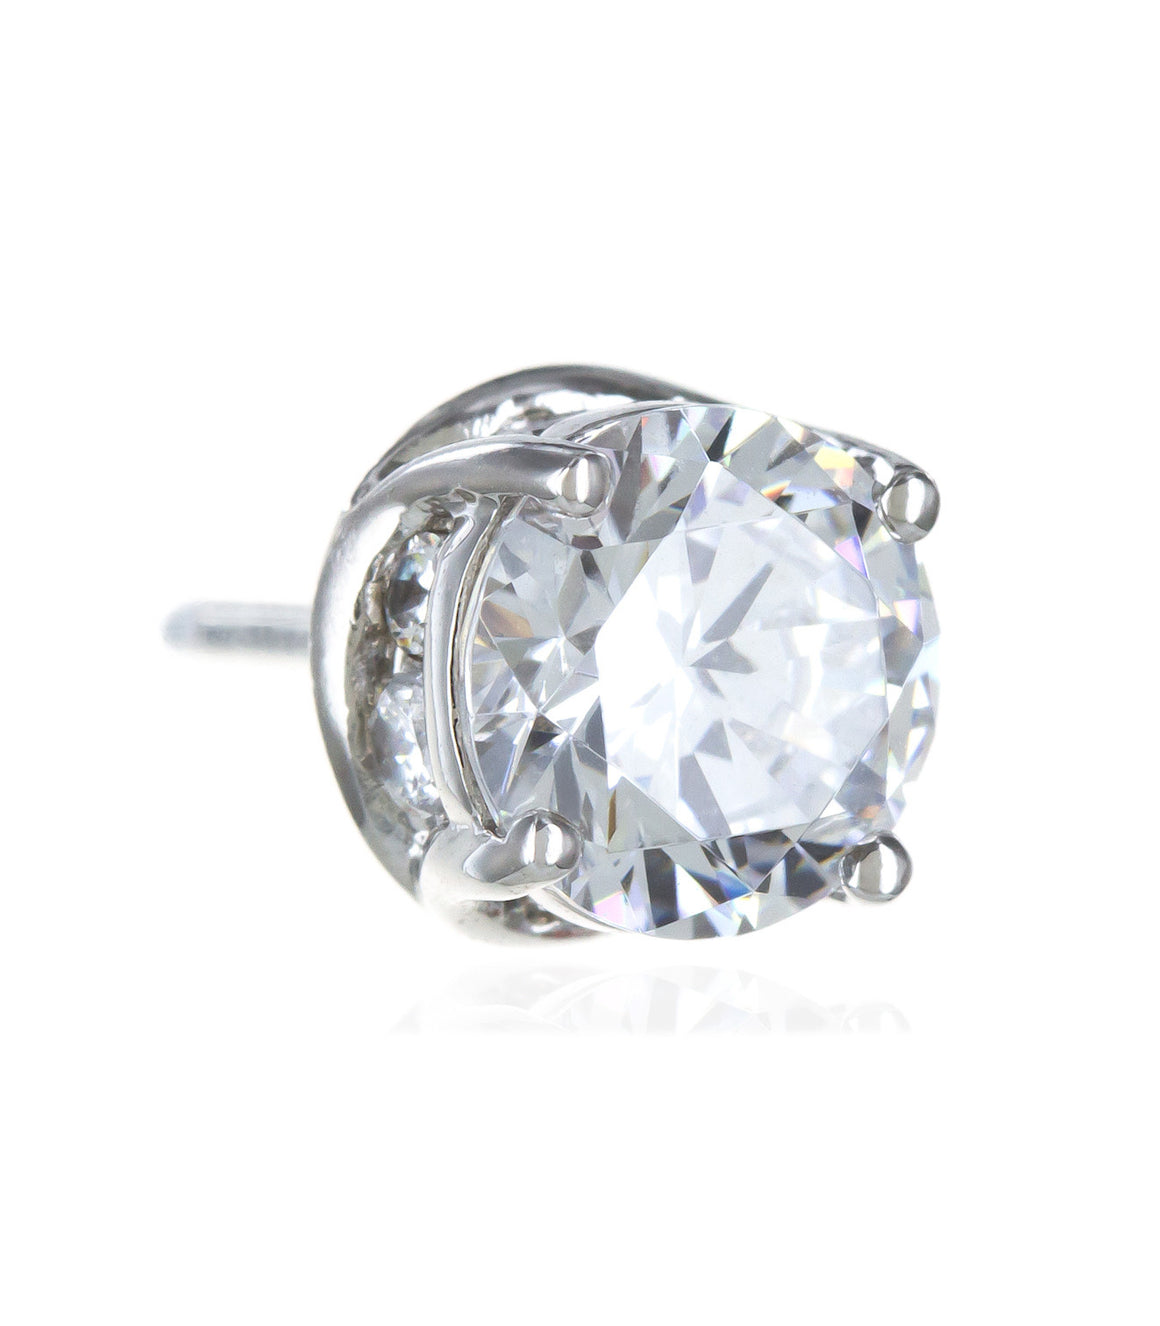 925 sterling silver round cz Stud Earrings